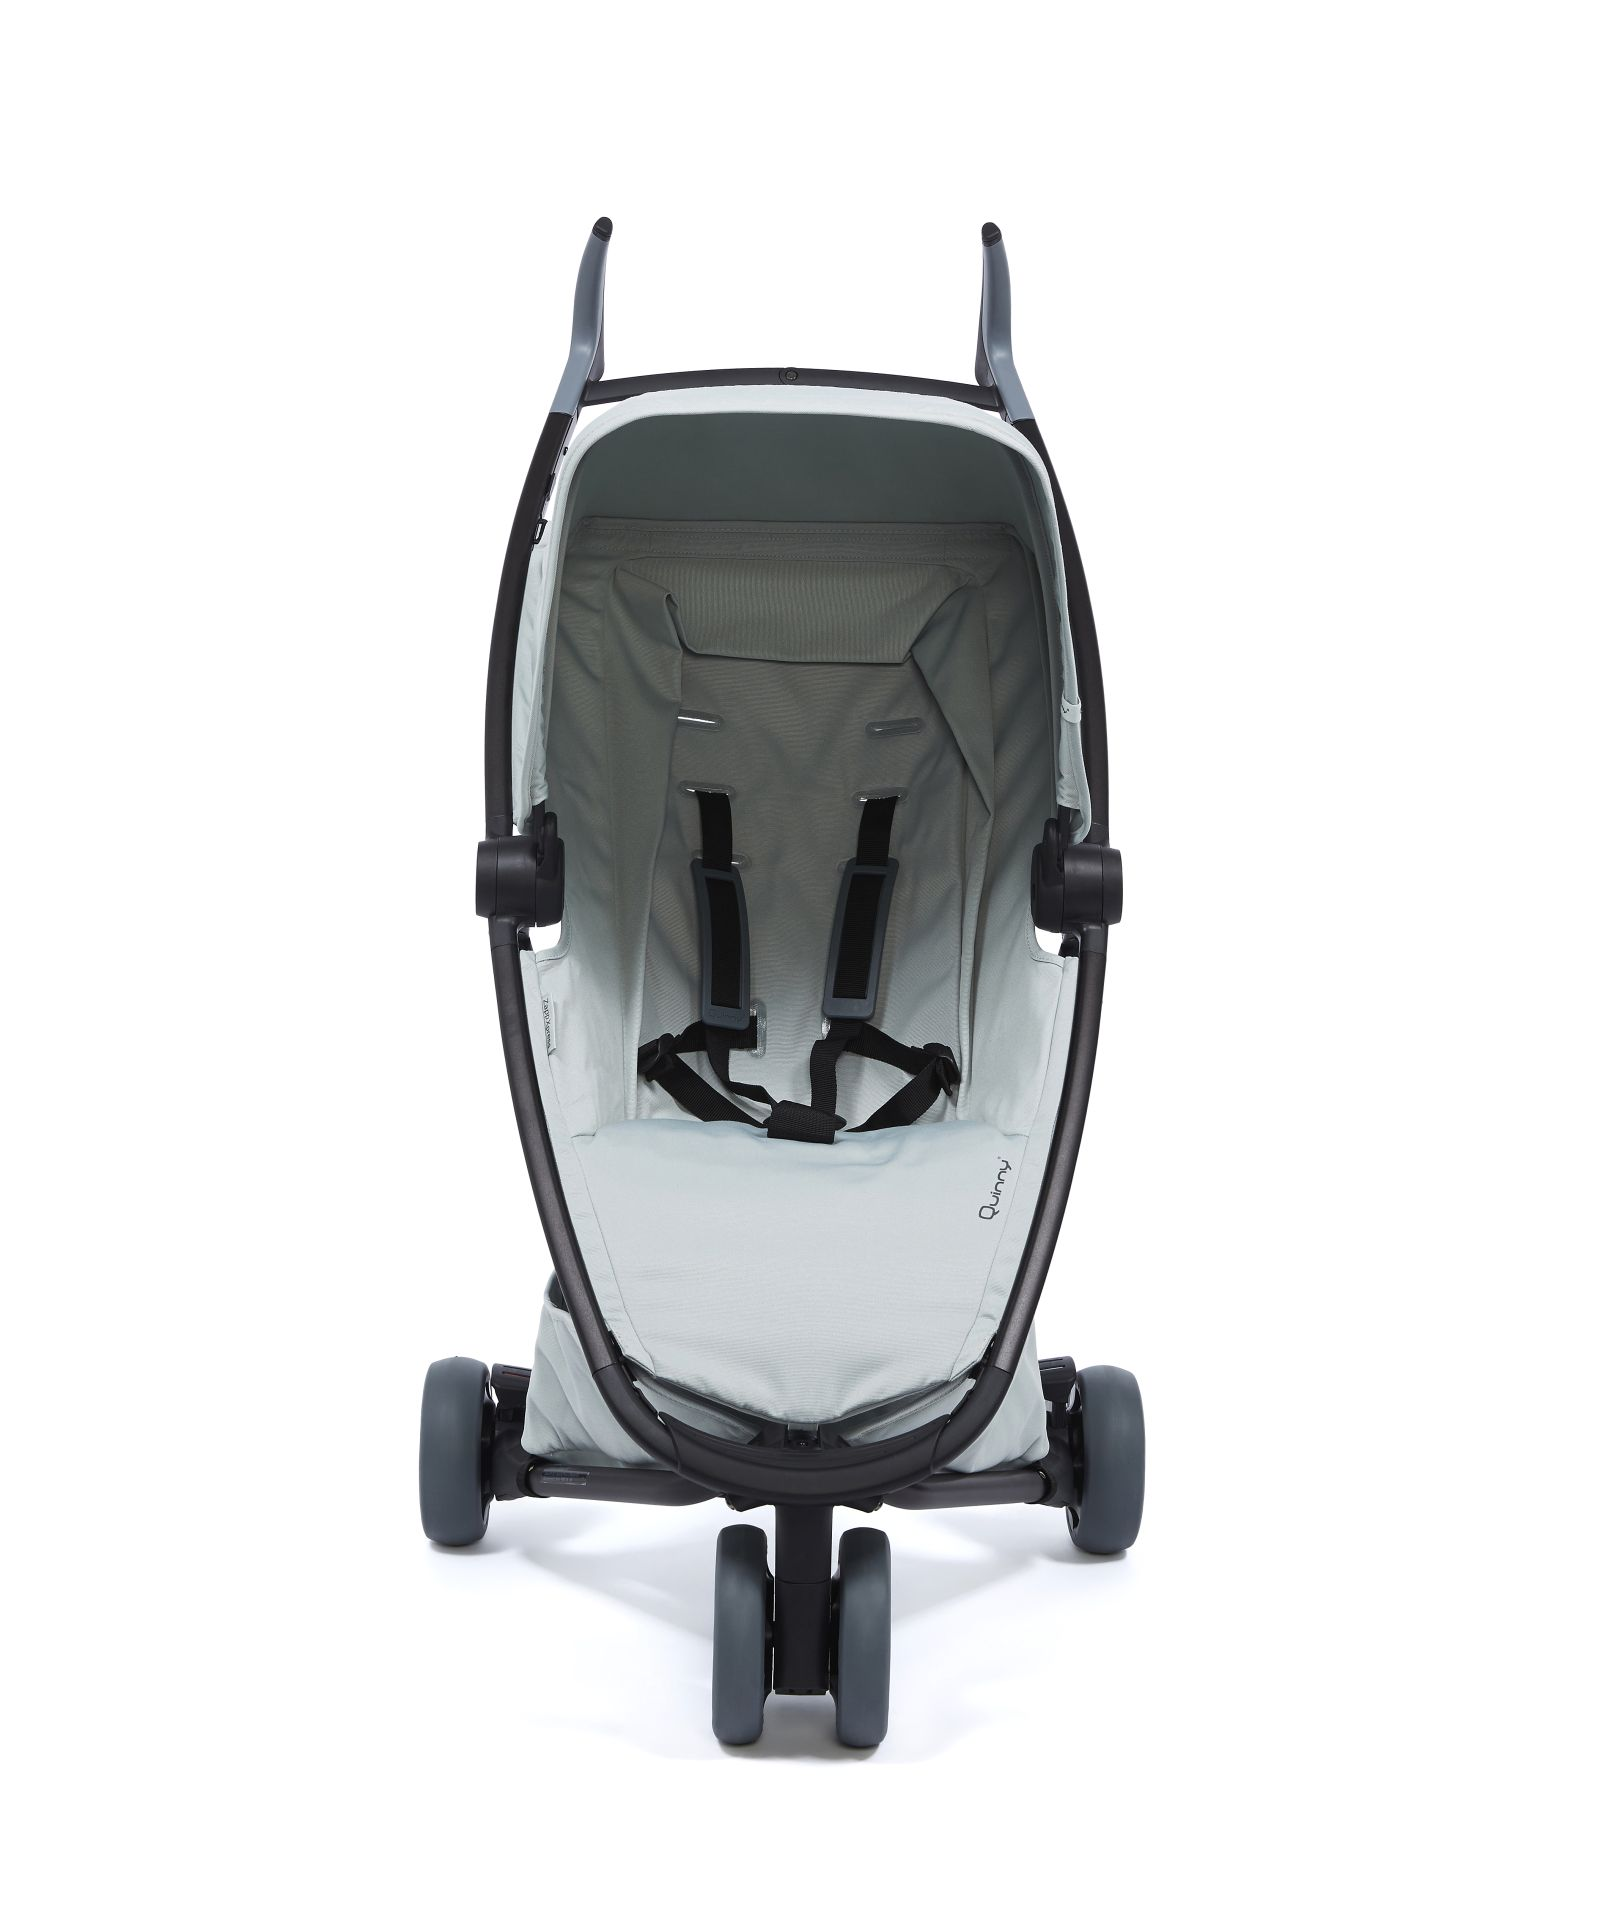 quinny buggy zapp xpress 2018 all grey buy at kidsroom strollers. Black Bedroom Furniture Sets. Home Design Ideas